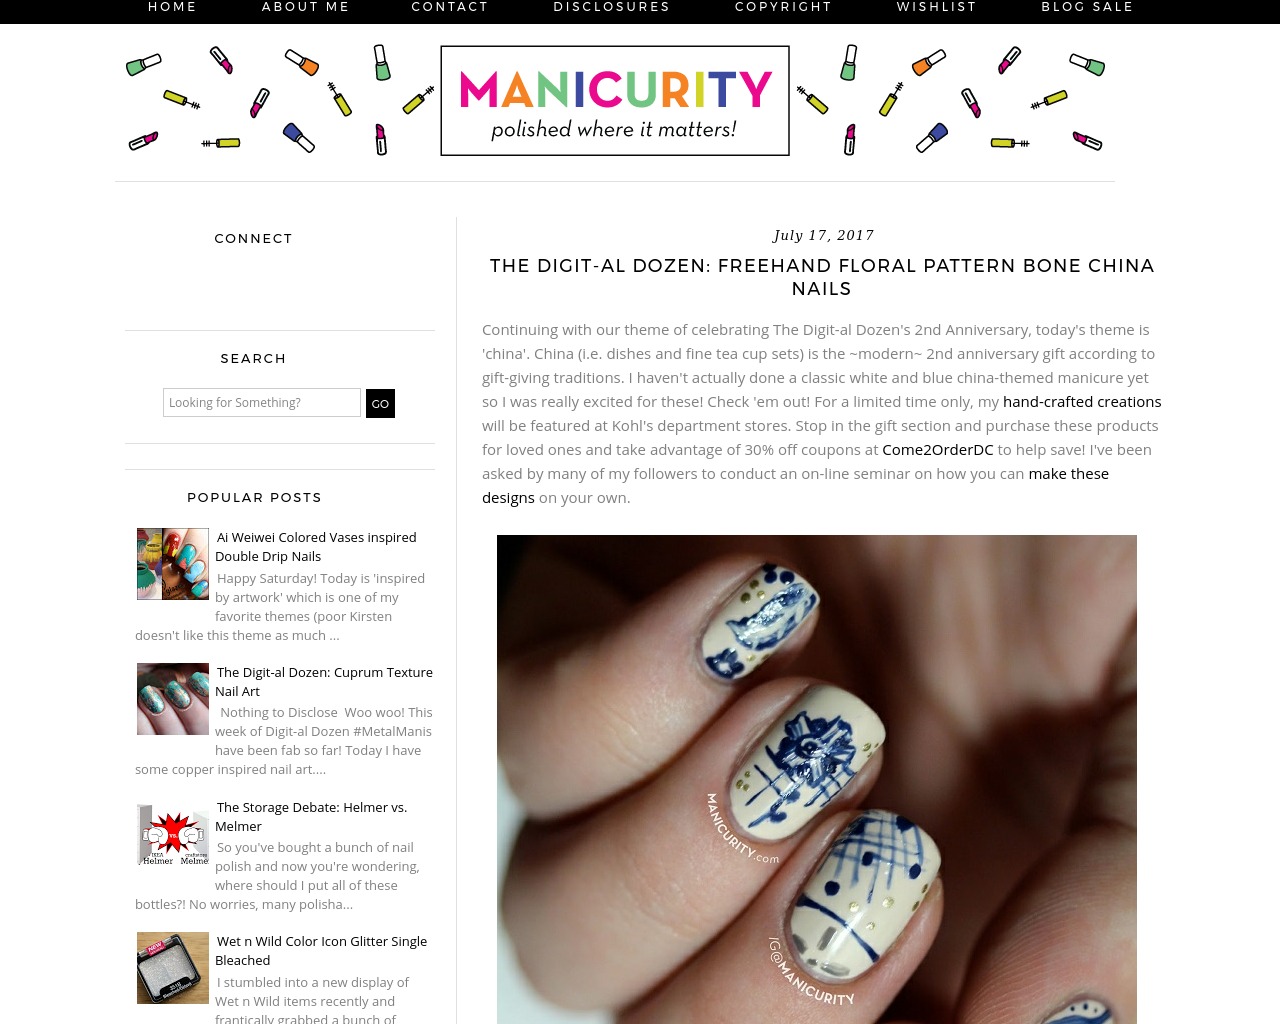 Manicurity-Advertising-Reviews-Pricing